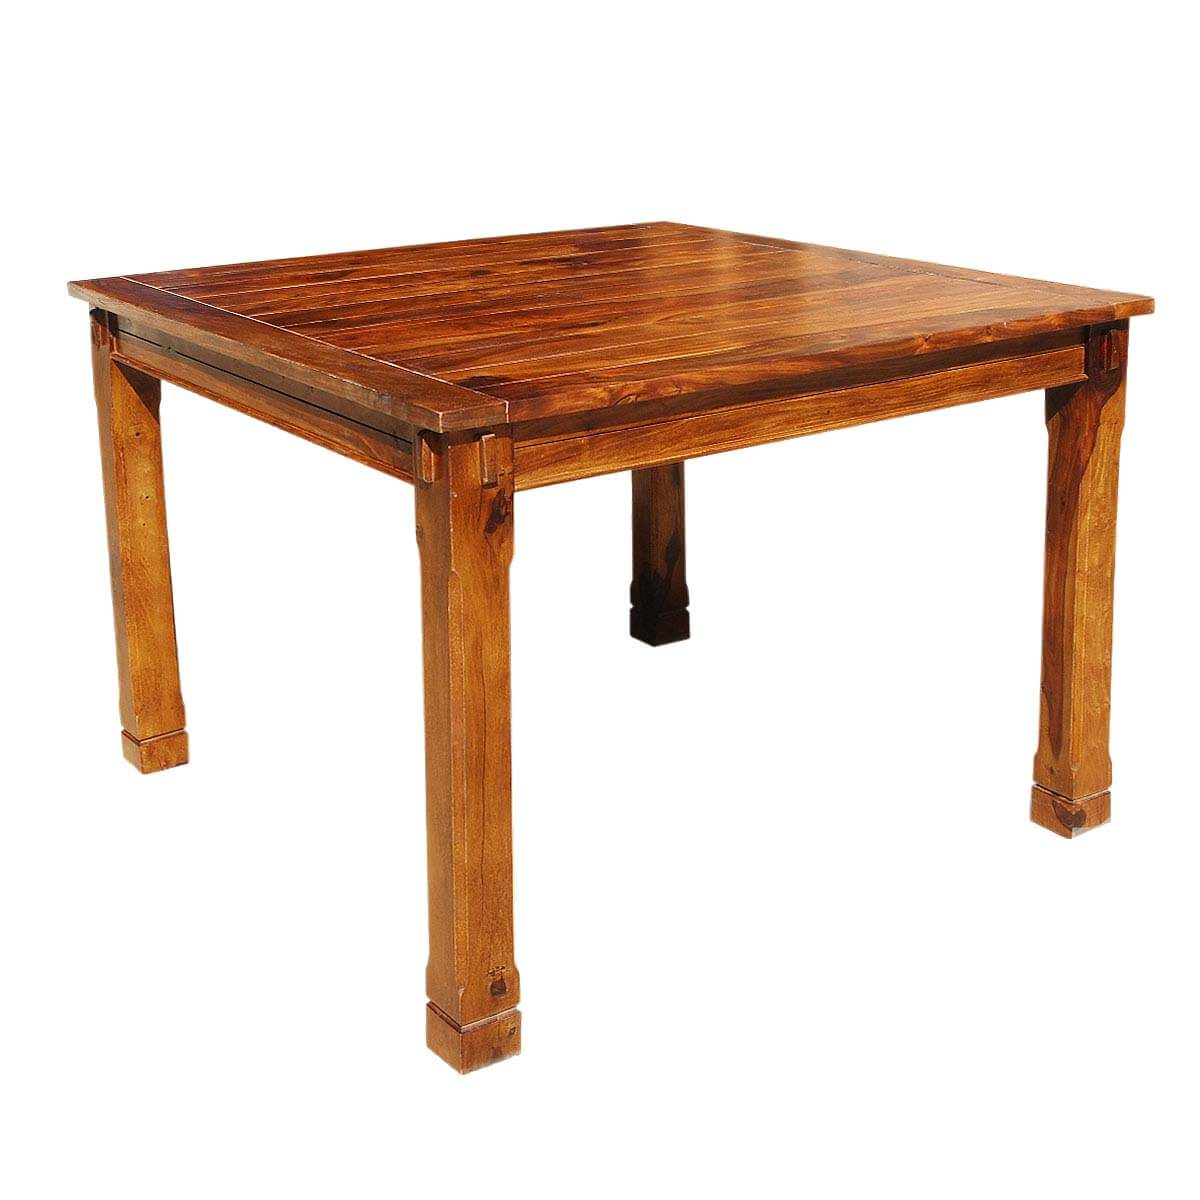 Rustic solid wood square counter height dining table Rustic wood dining table